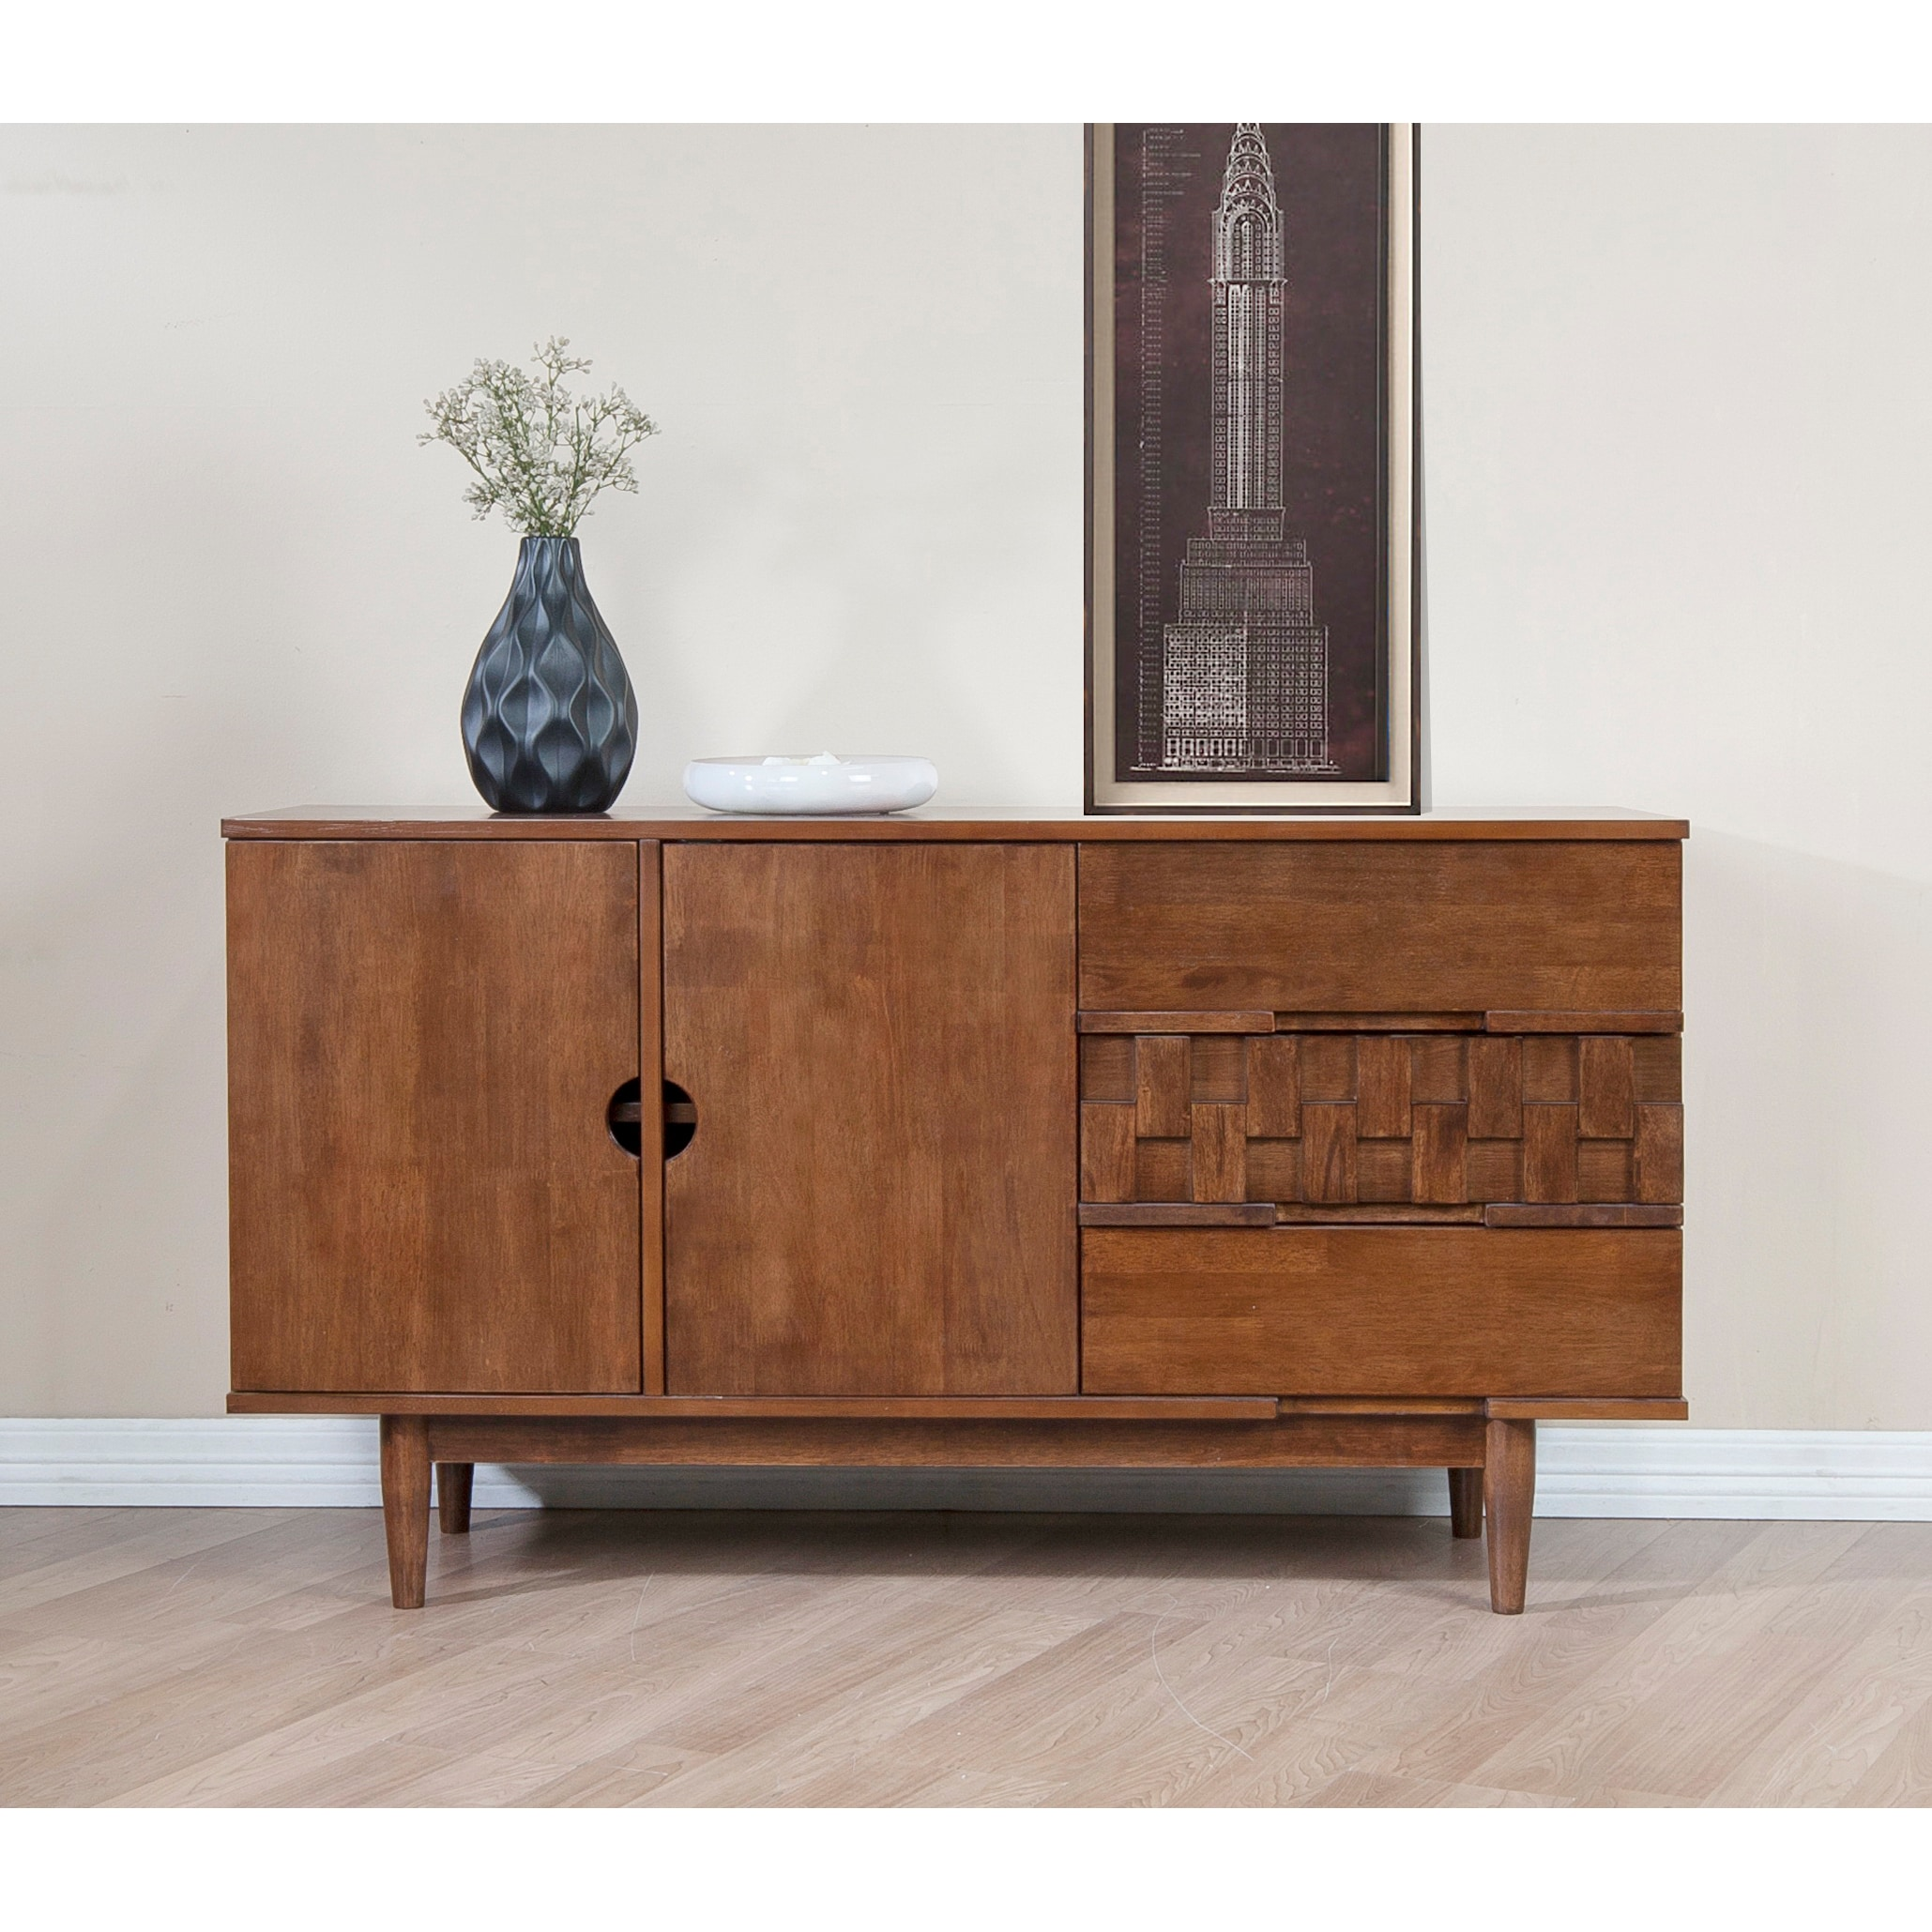 buy buffets sideboards china cabinets online at overstock our rh overstock com furniture buffets sideboards antiques ashley furniture sideboards and buffets